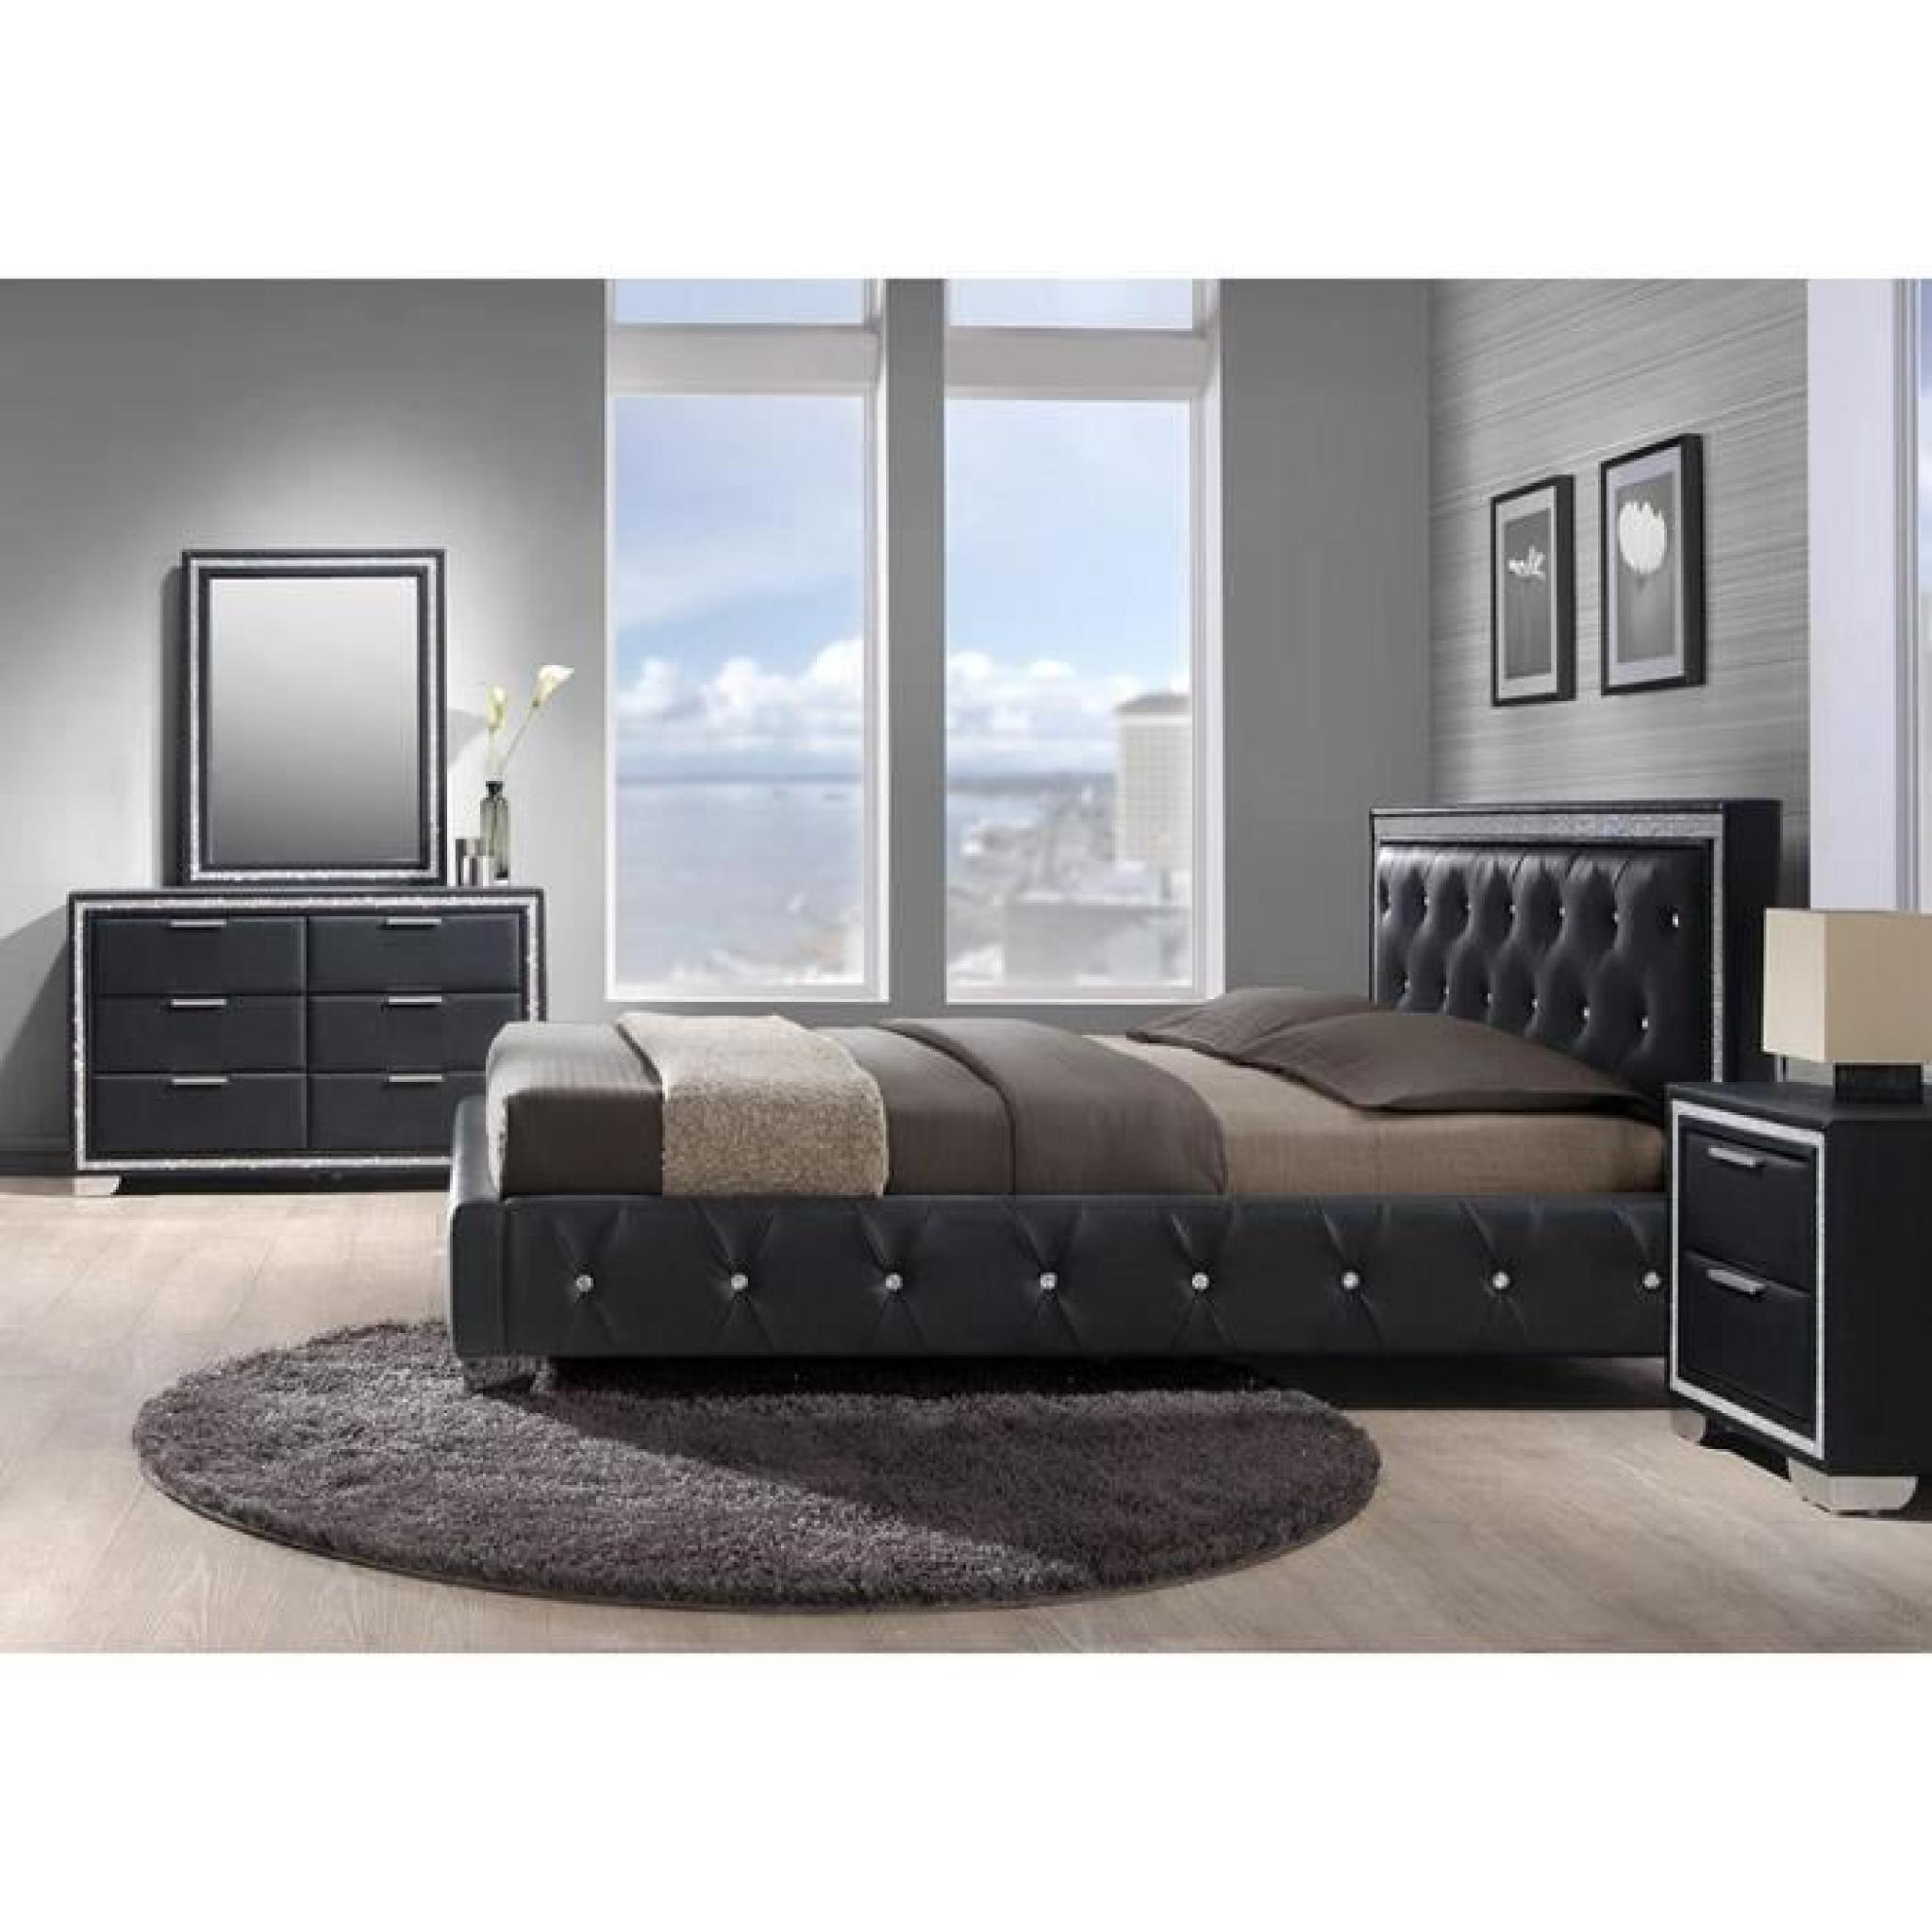 lit simili noir et strass avec t te de lit cladis 140 x 190 achat vente lit pas cher couleur. Black Bedroom Furniture Sets. Home Design Ideas